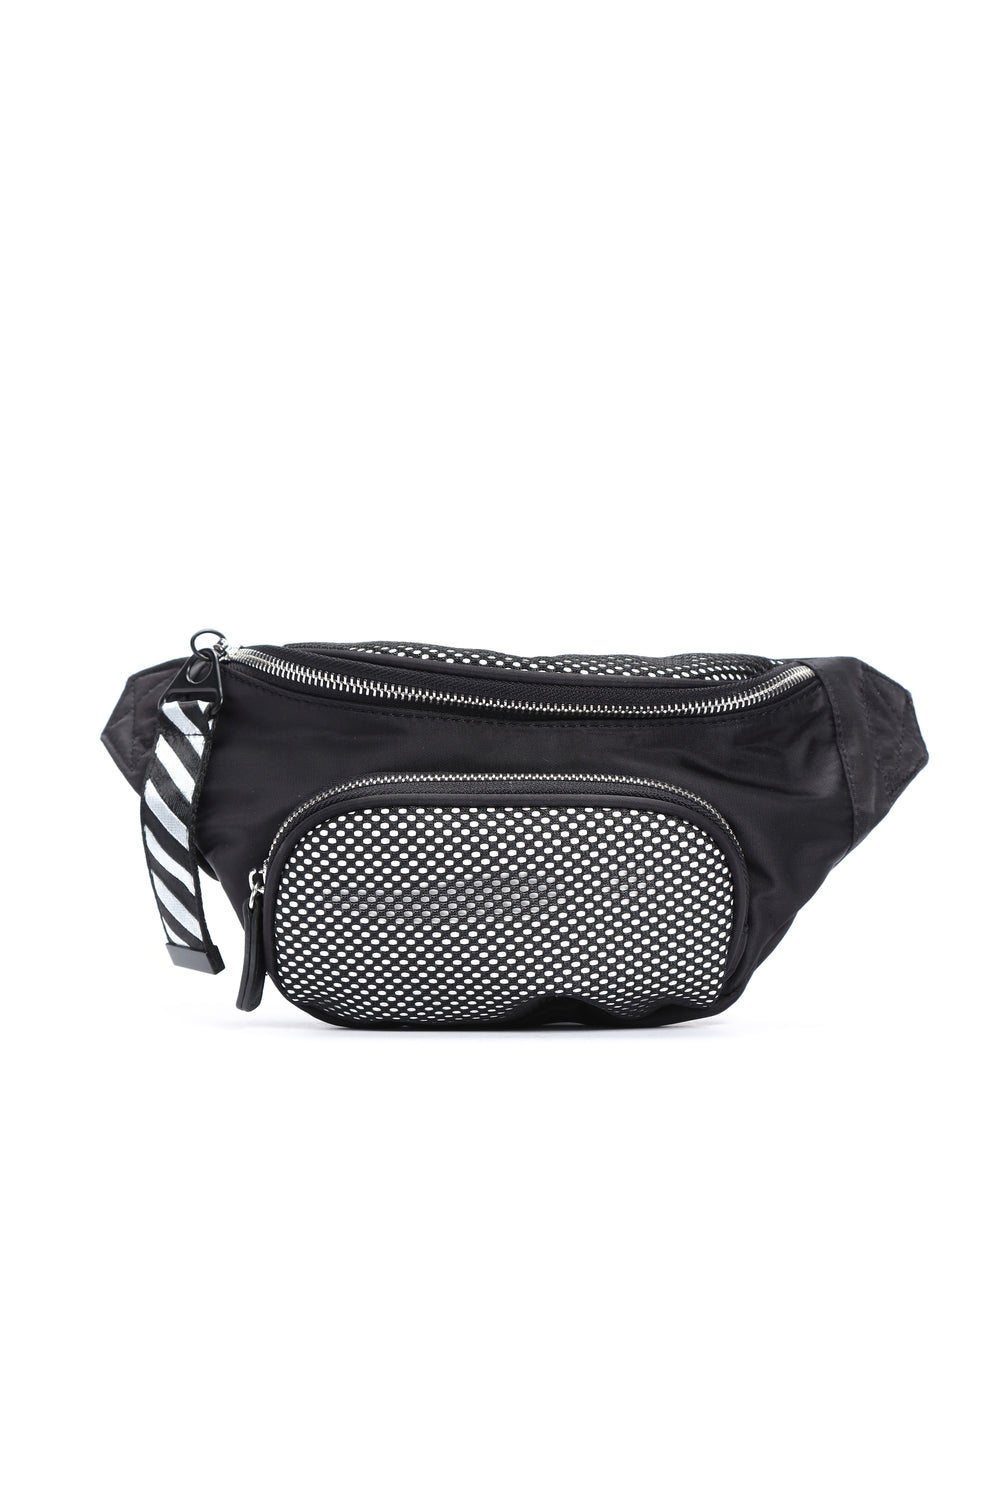 Never Off Beat Fanny Pack - Black